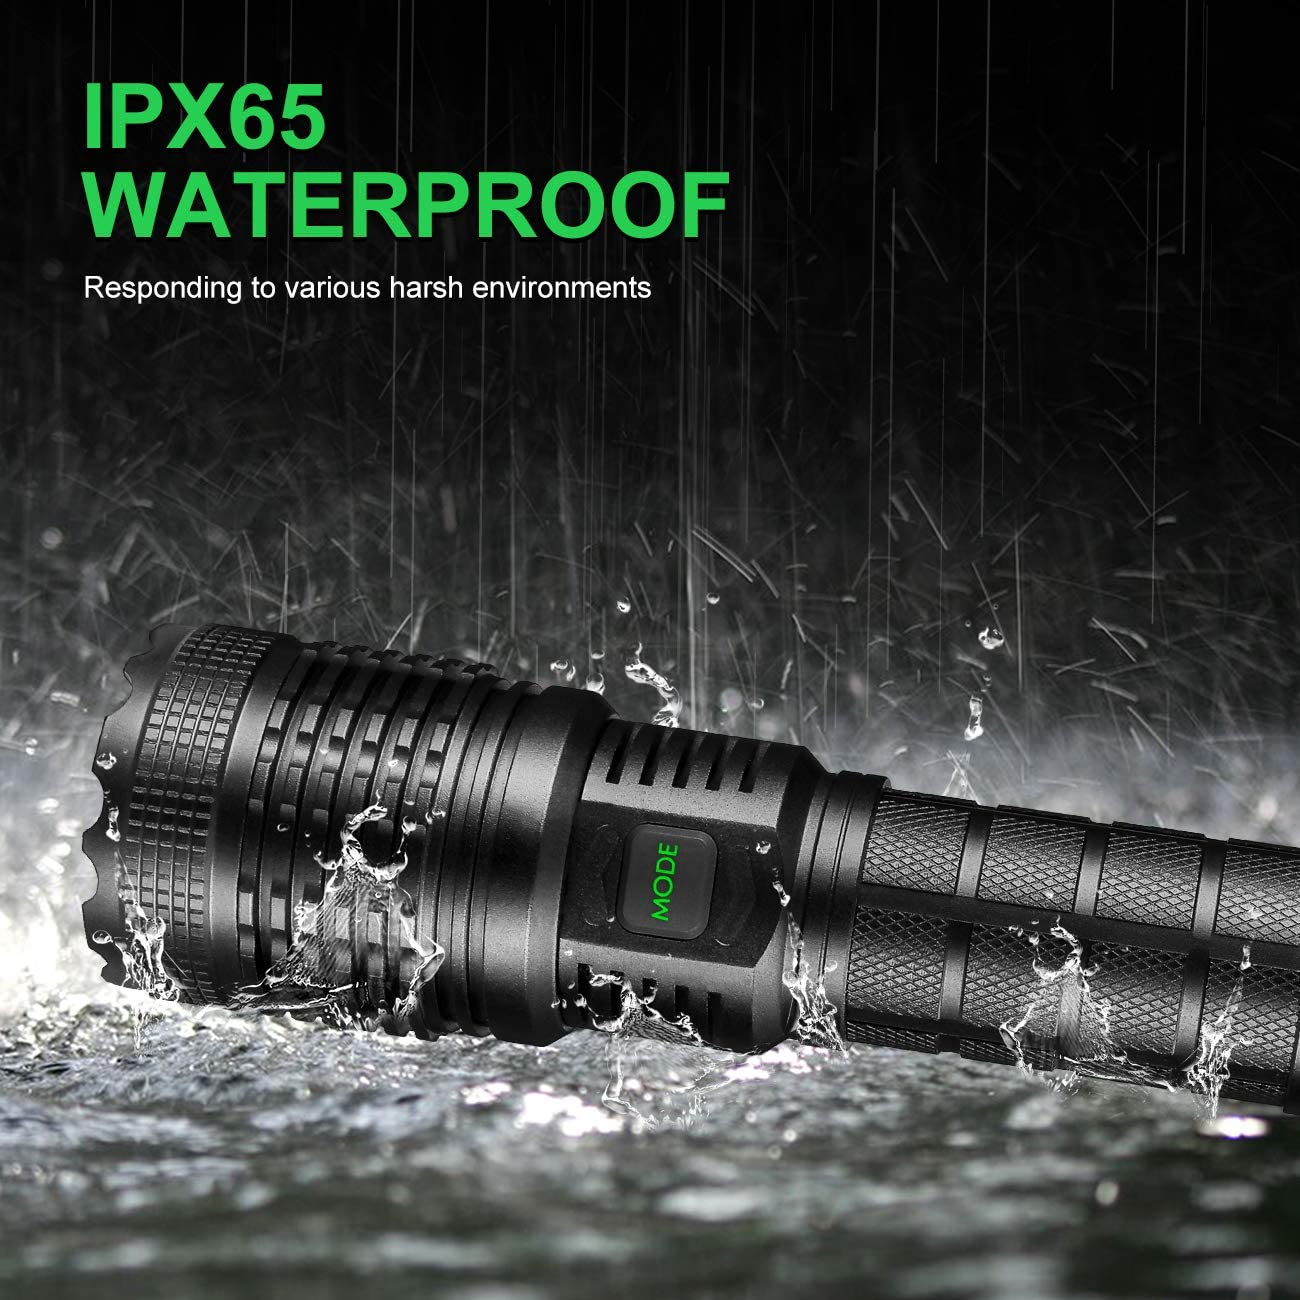 Outdoor Emergency Hiking Tokeyla Xhp50 LED Flashlight,2000 Lumens Torch Ipx65 Water Resistant,5 Modes and Zoomable for Camping